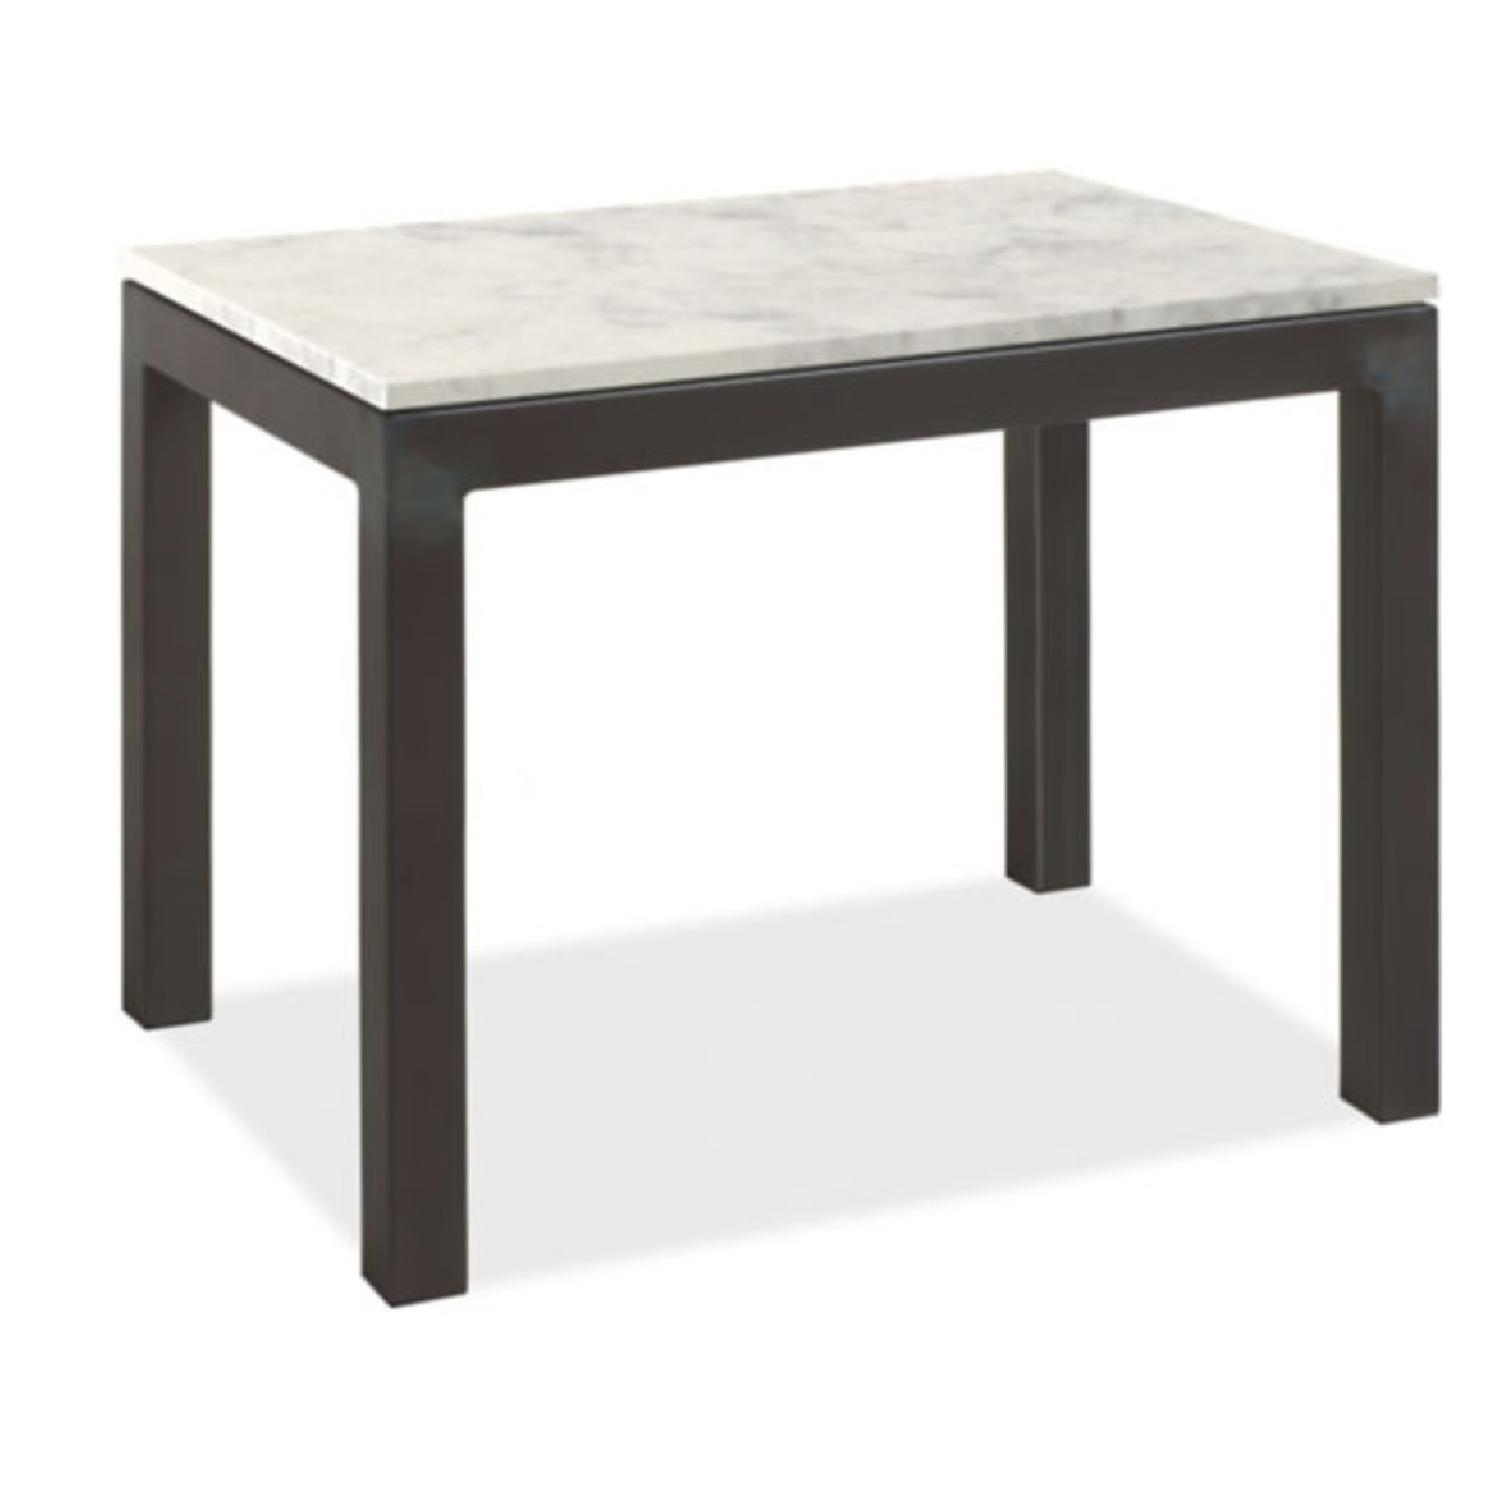 Room & Board Parsons Marble White Quartz Coffee Table